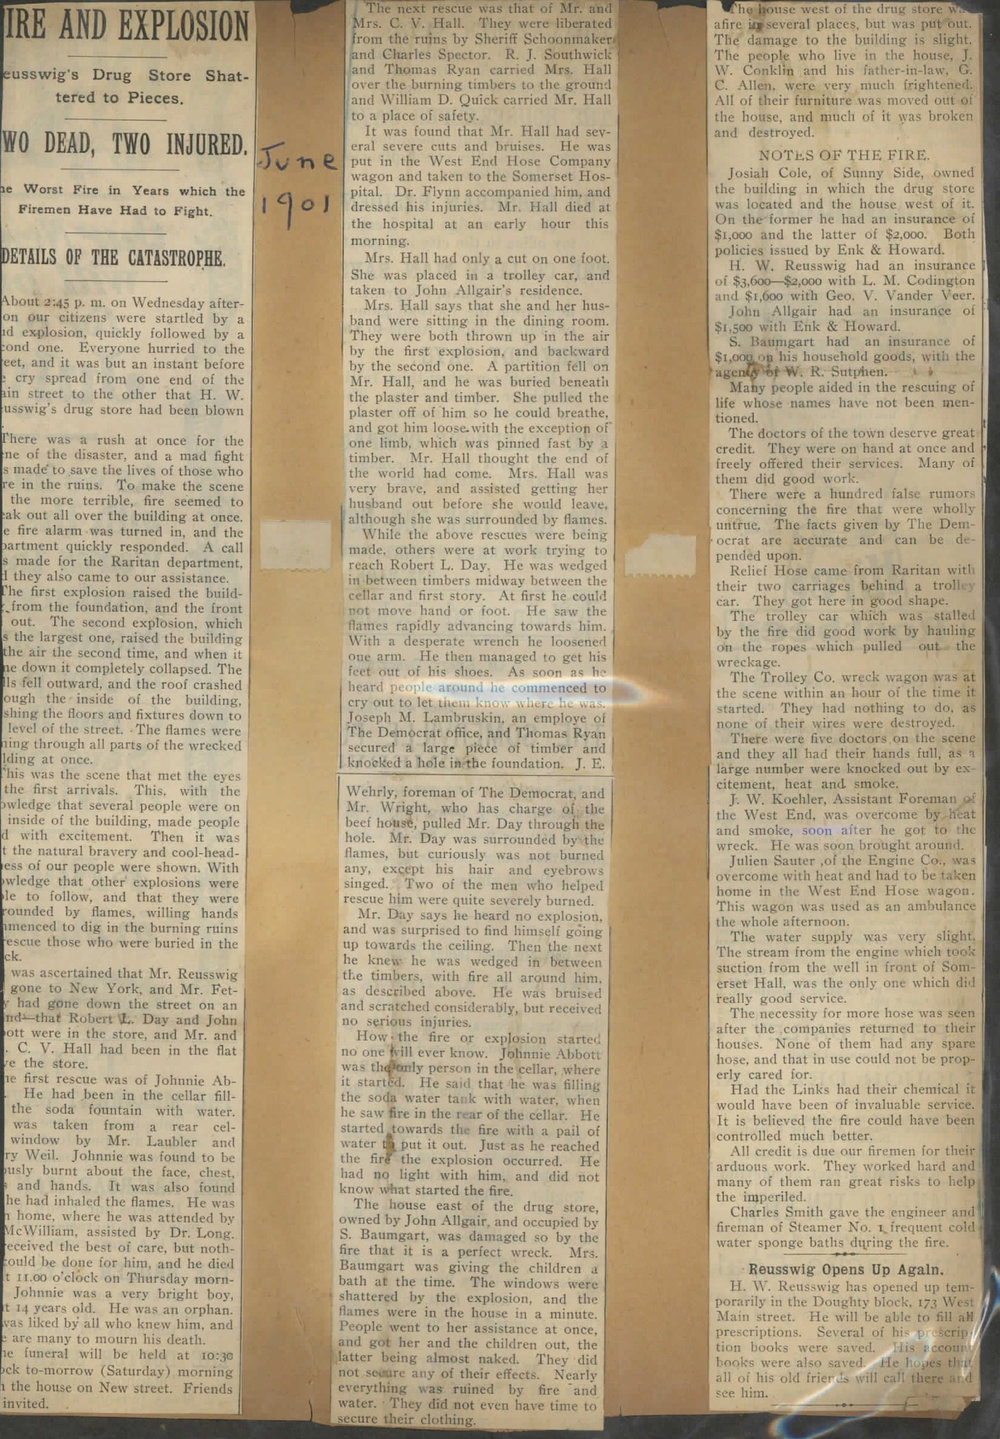 June 1901 fire.article_Page_1_Image_0001.jpg